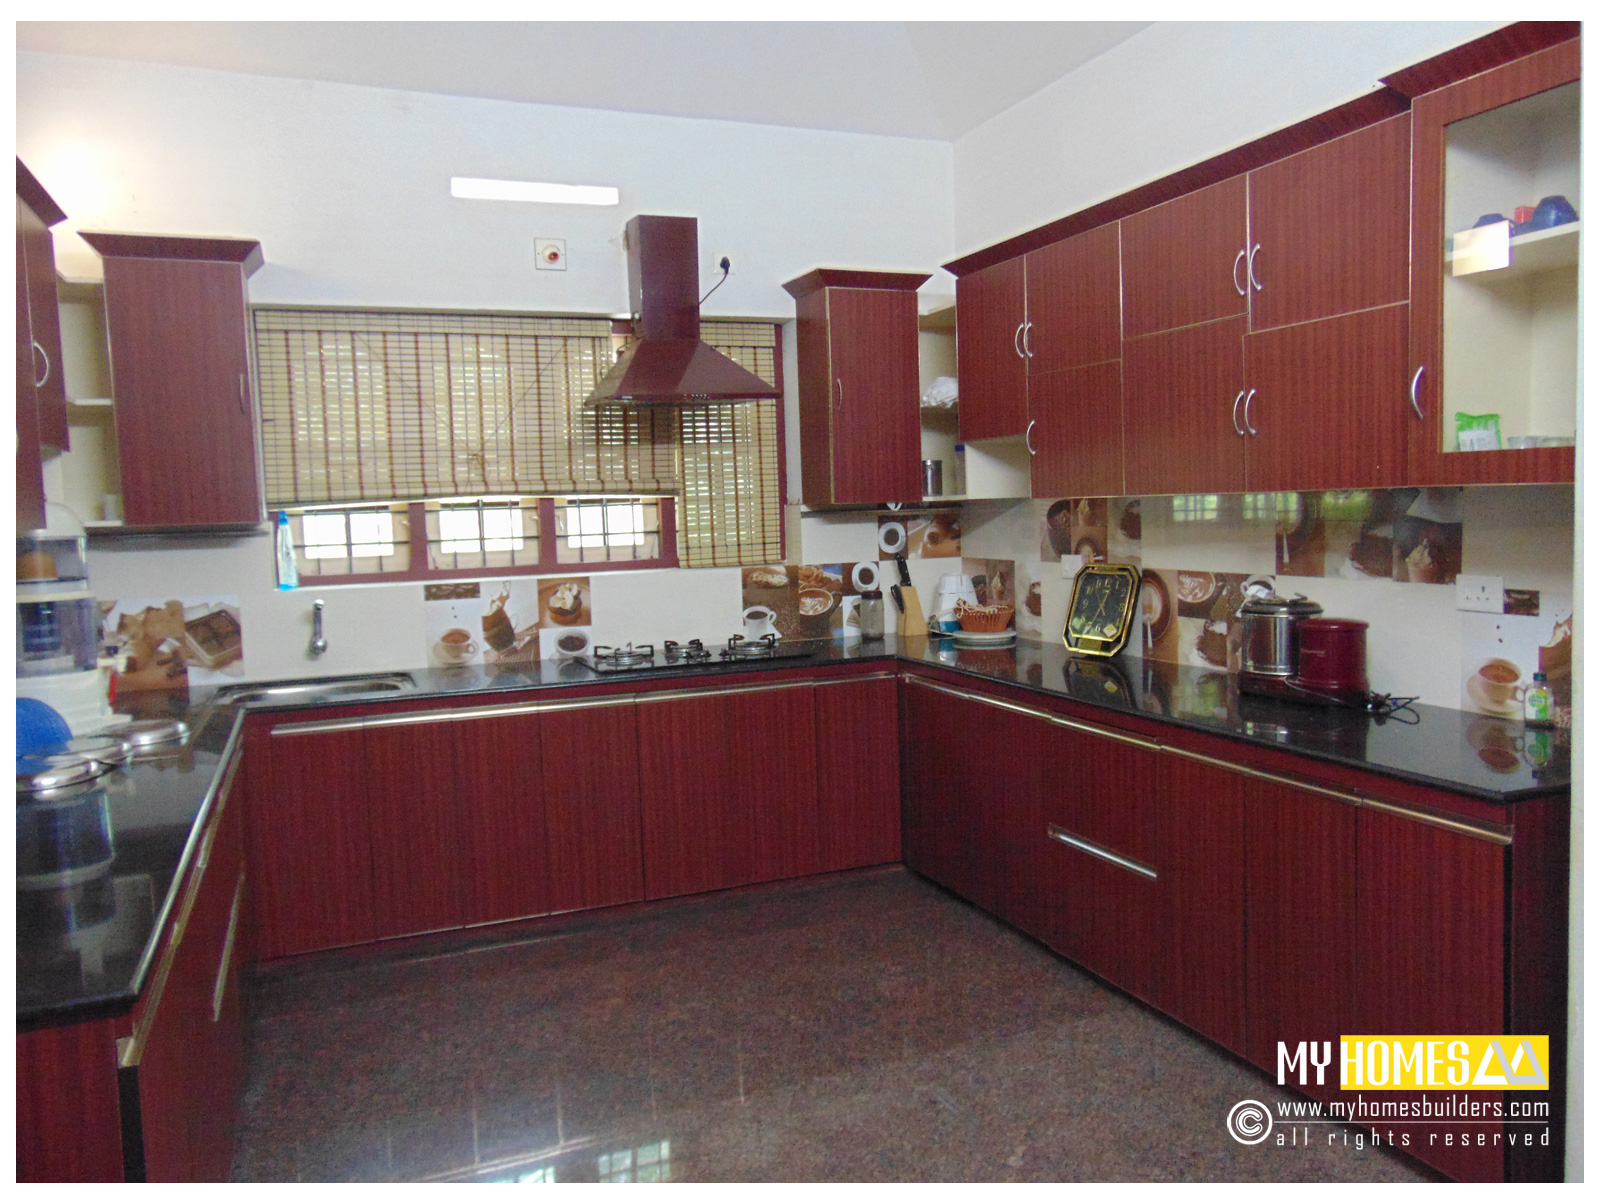 Budget house kerala home designers builder in thrissur india for House design kitchen ideas